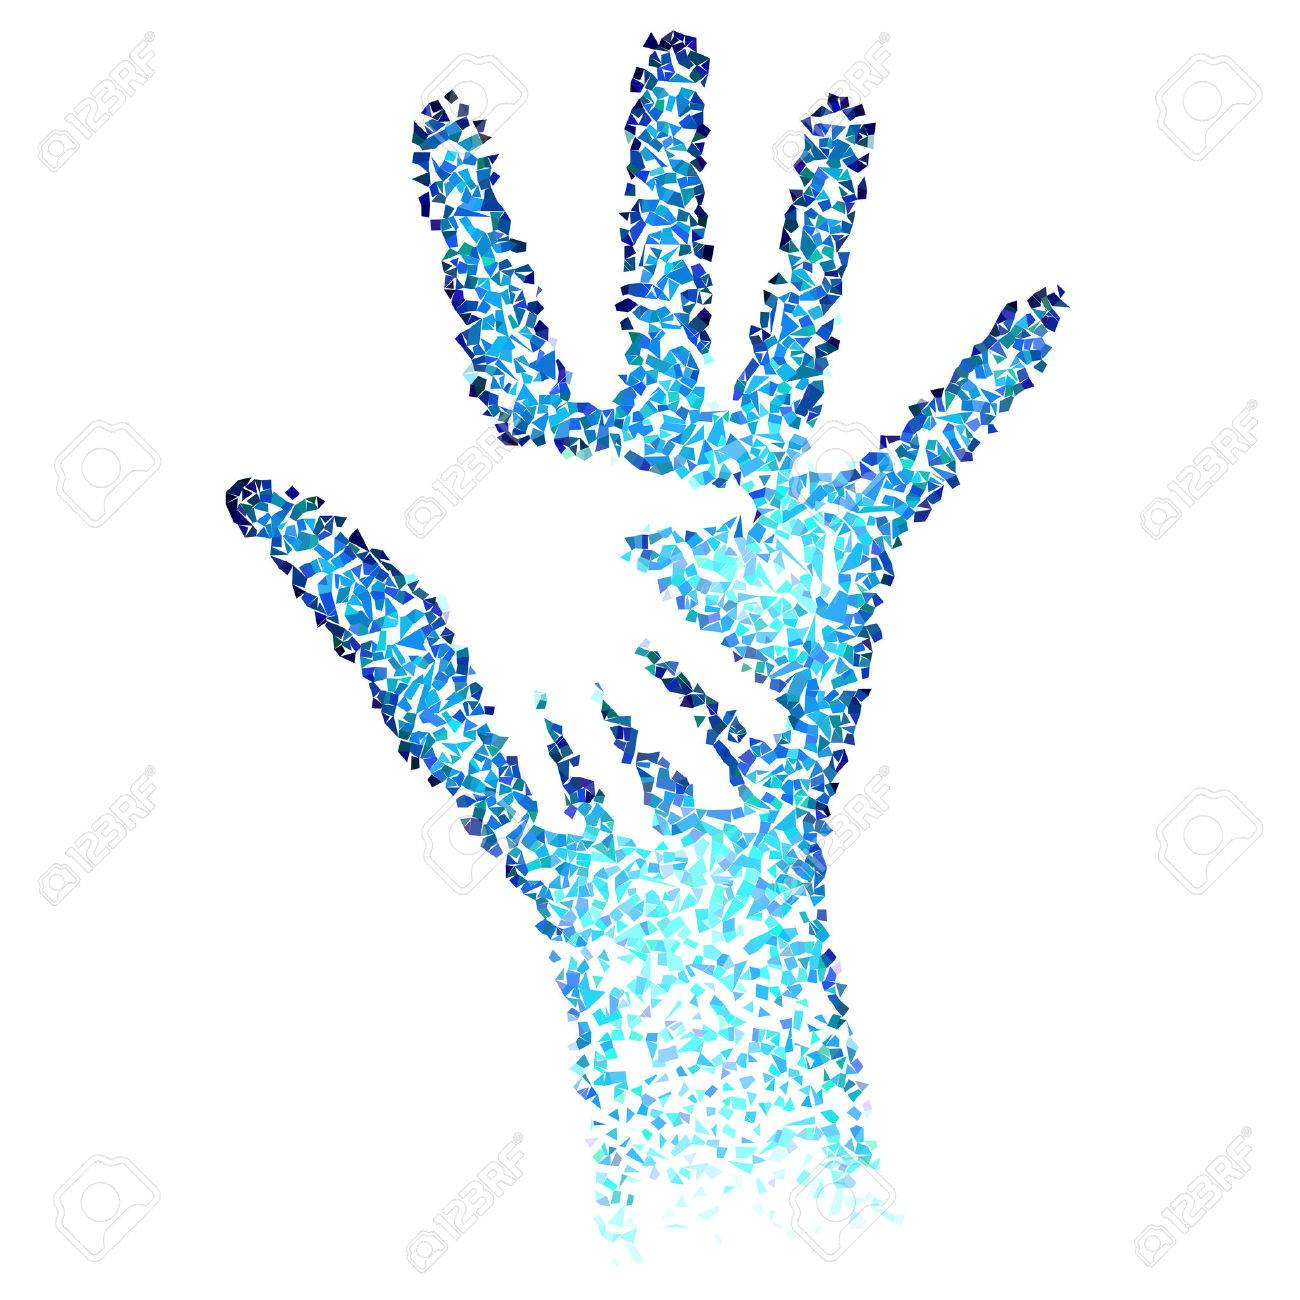 Helping Hands. Abstract illustration in blue color Stock Vector - 40964680